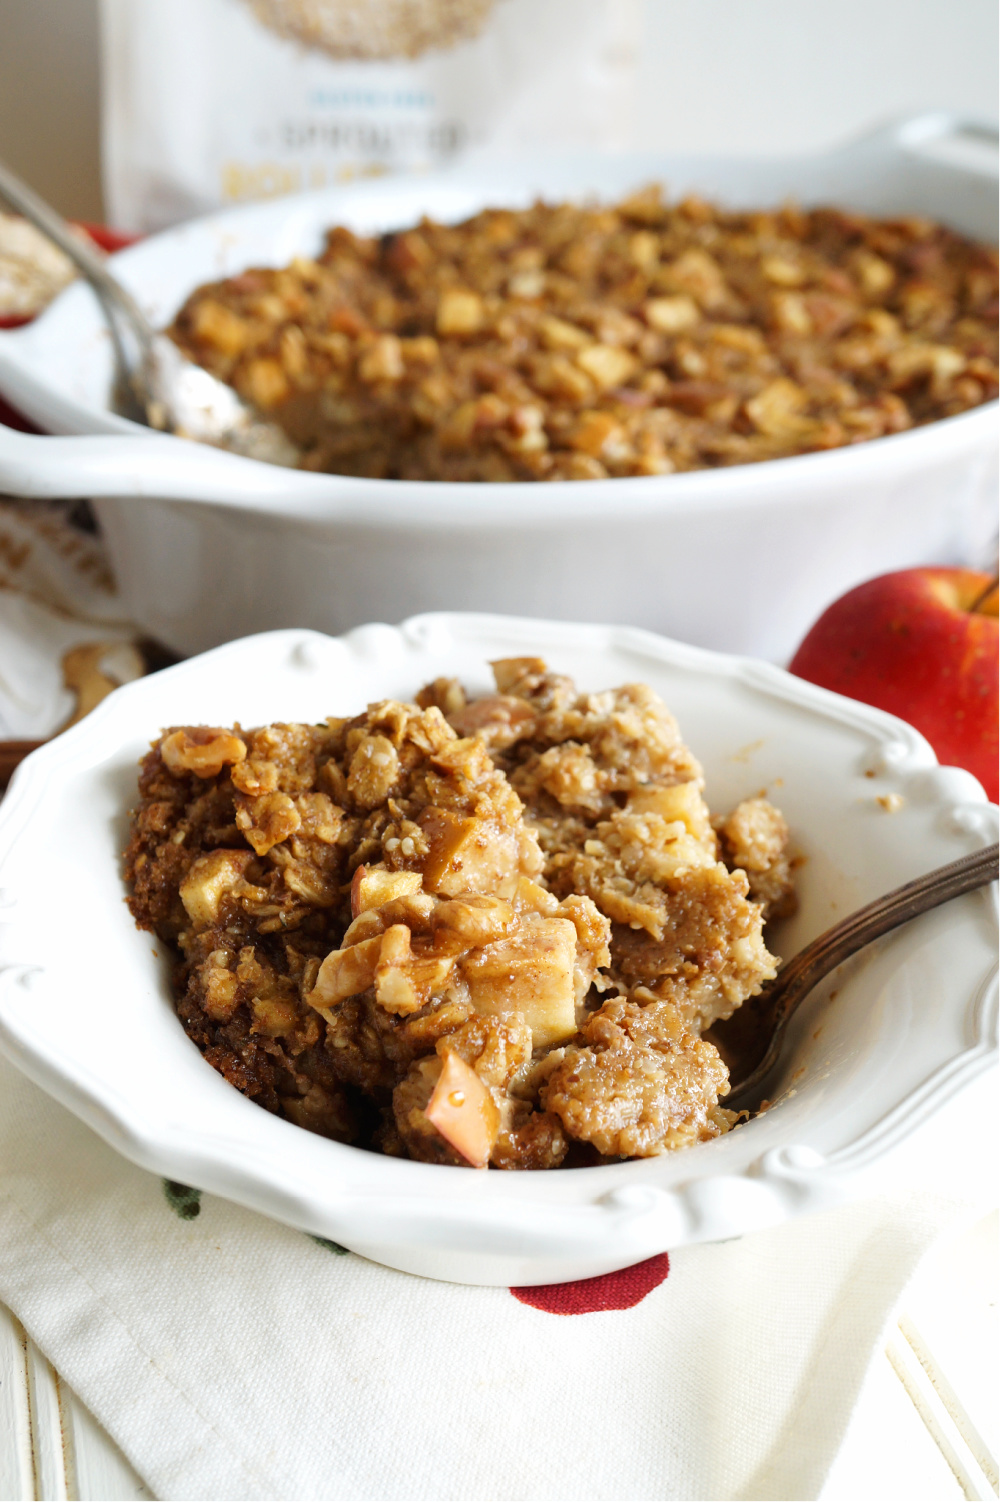 portion of baked apple oatmeal in a bowl